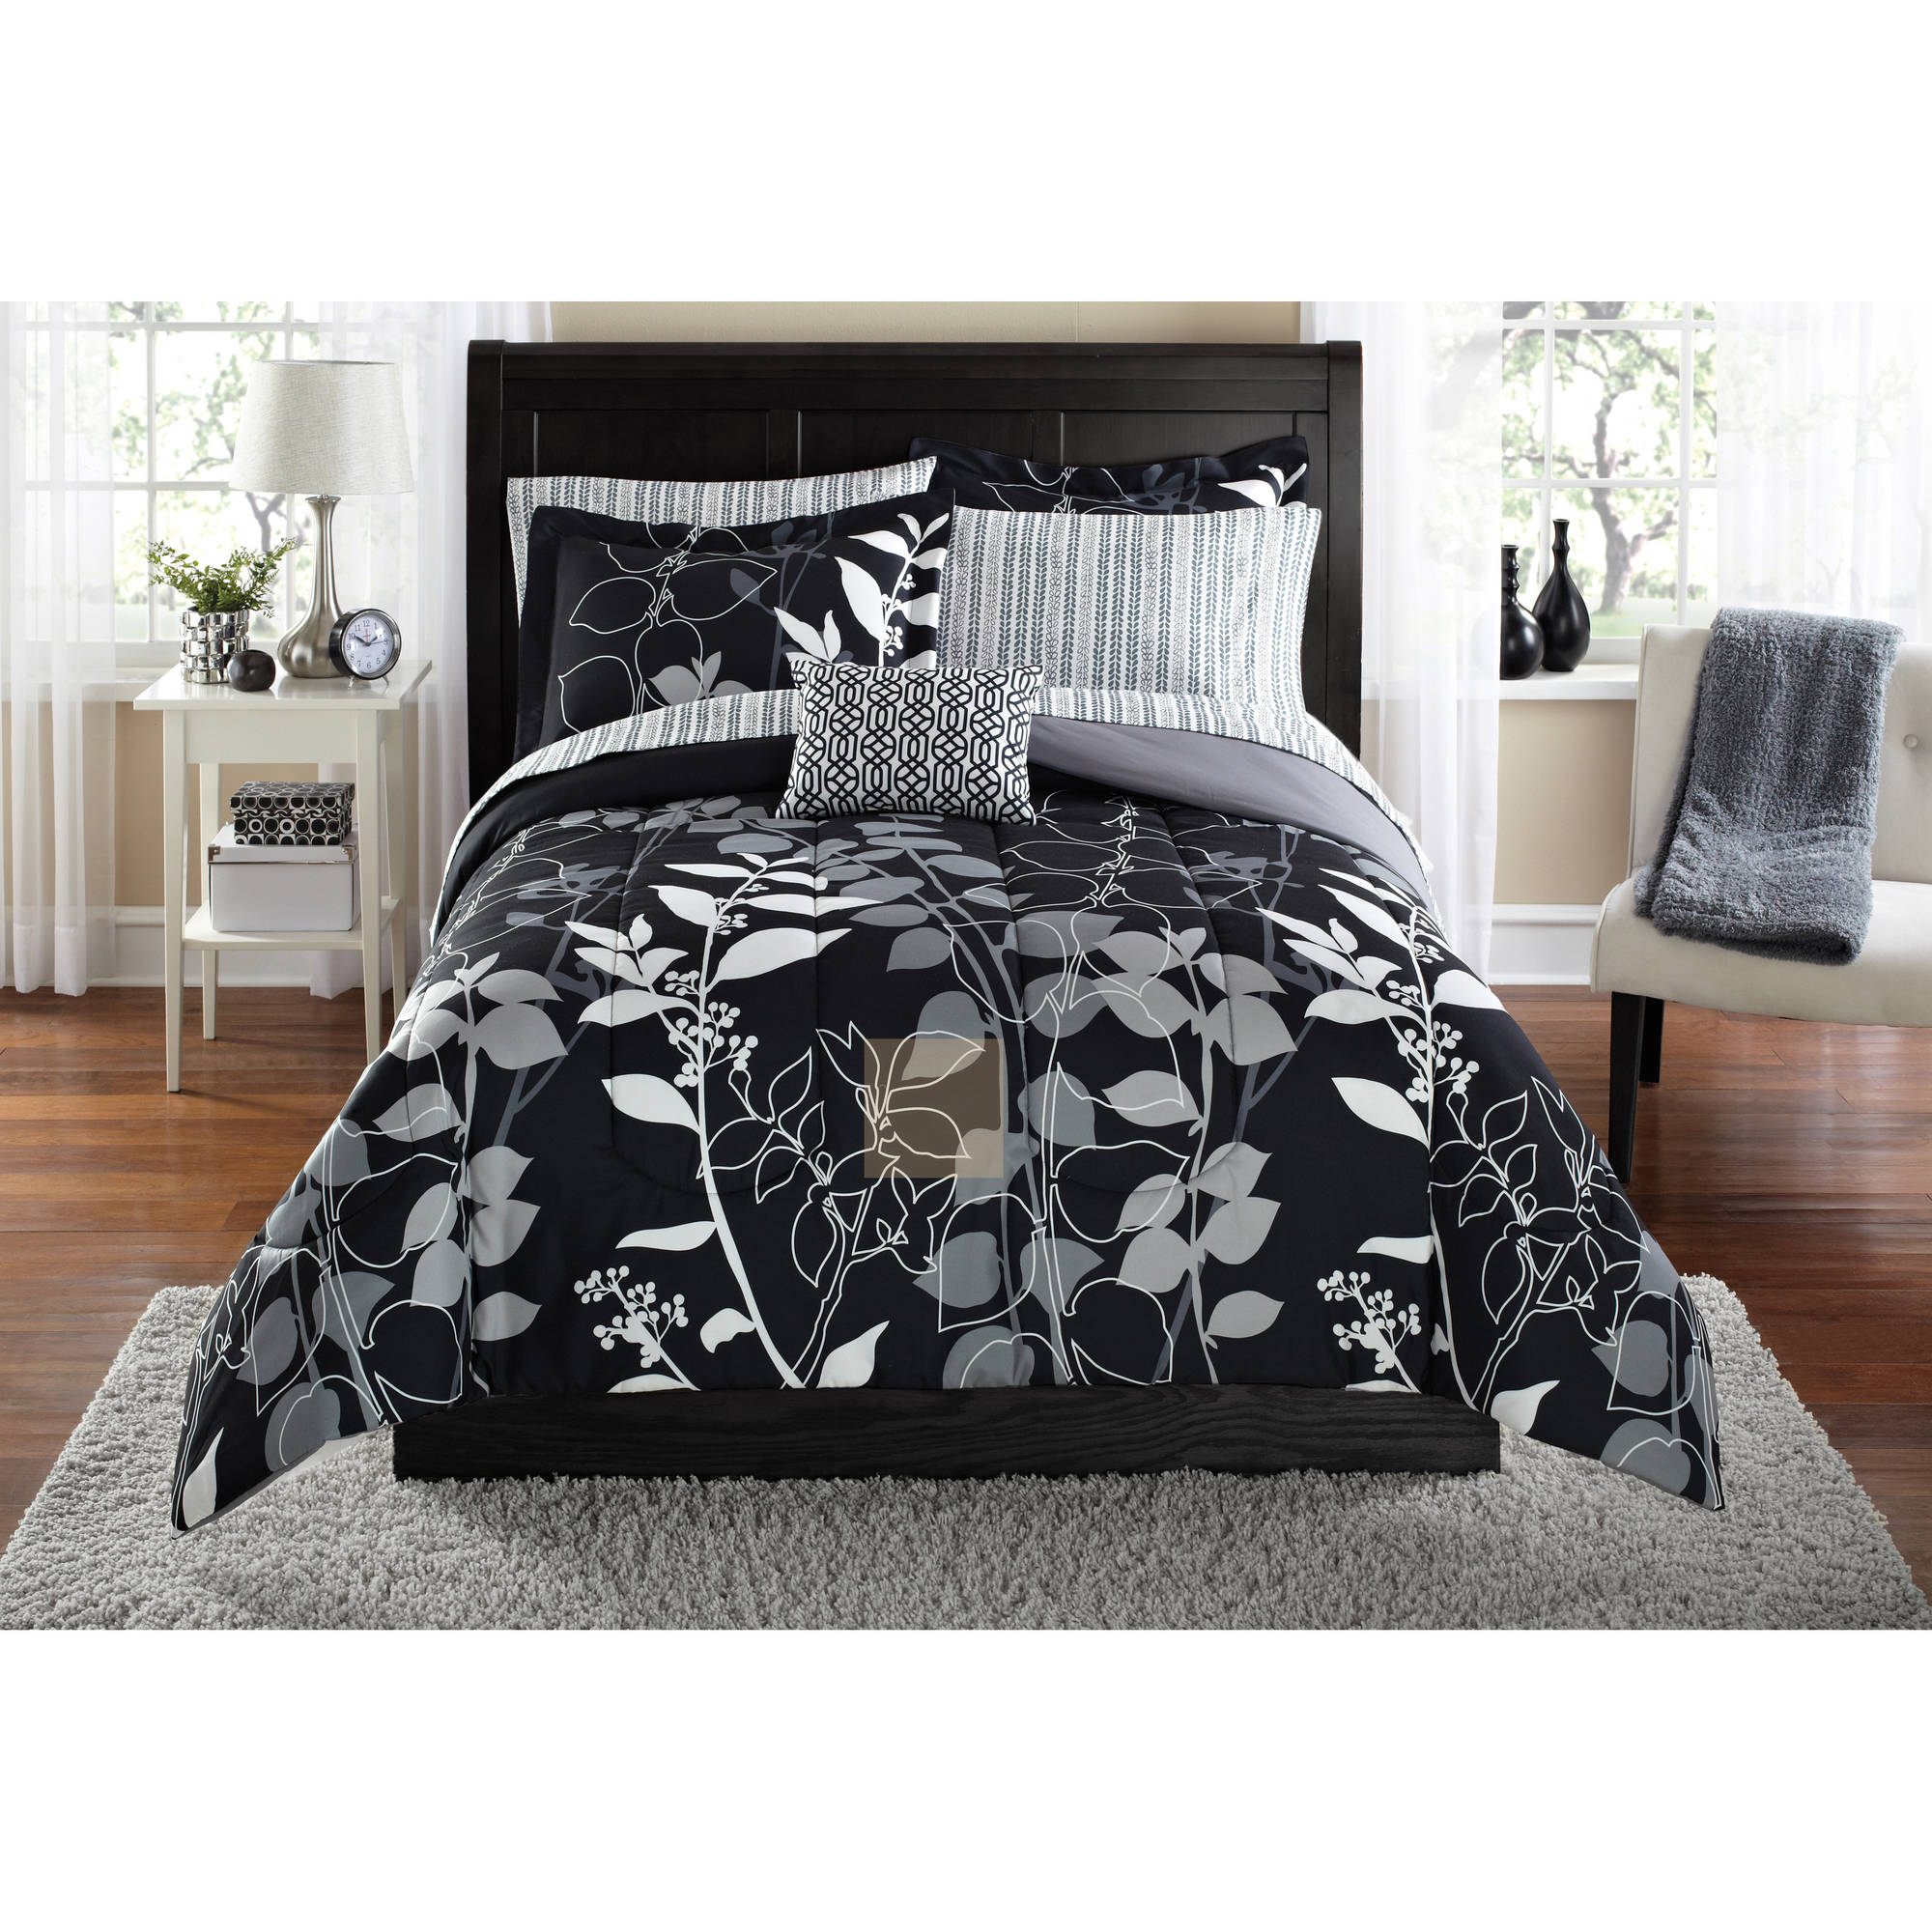 com bag orkasi twin size ip coordinated comforter walmart bedding bed xl in mainstays a set